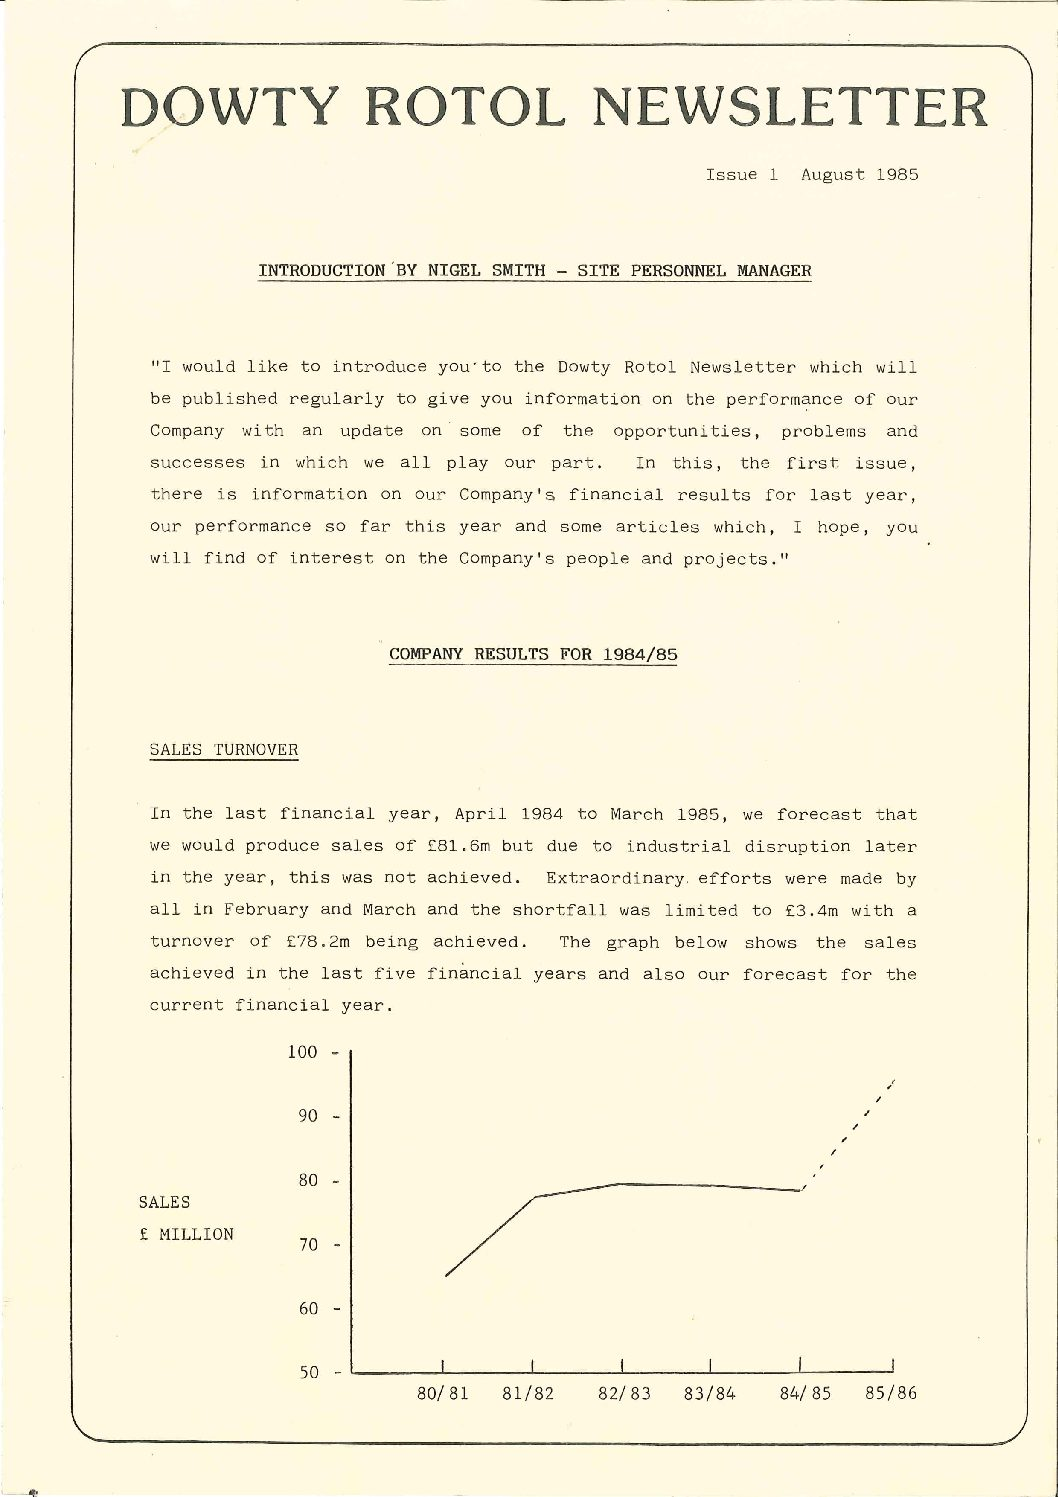 Dowty Rotol - Newsletters